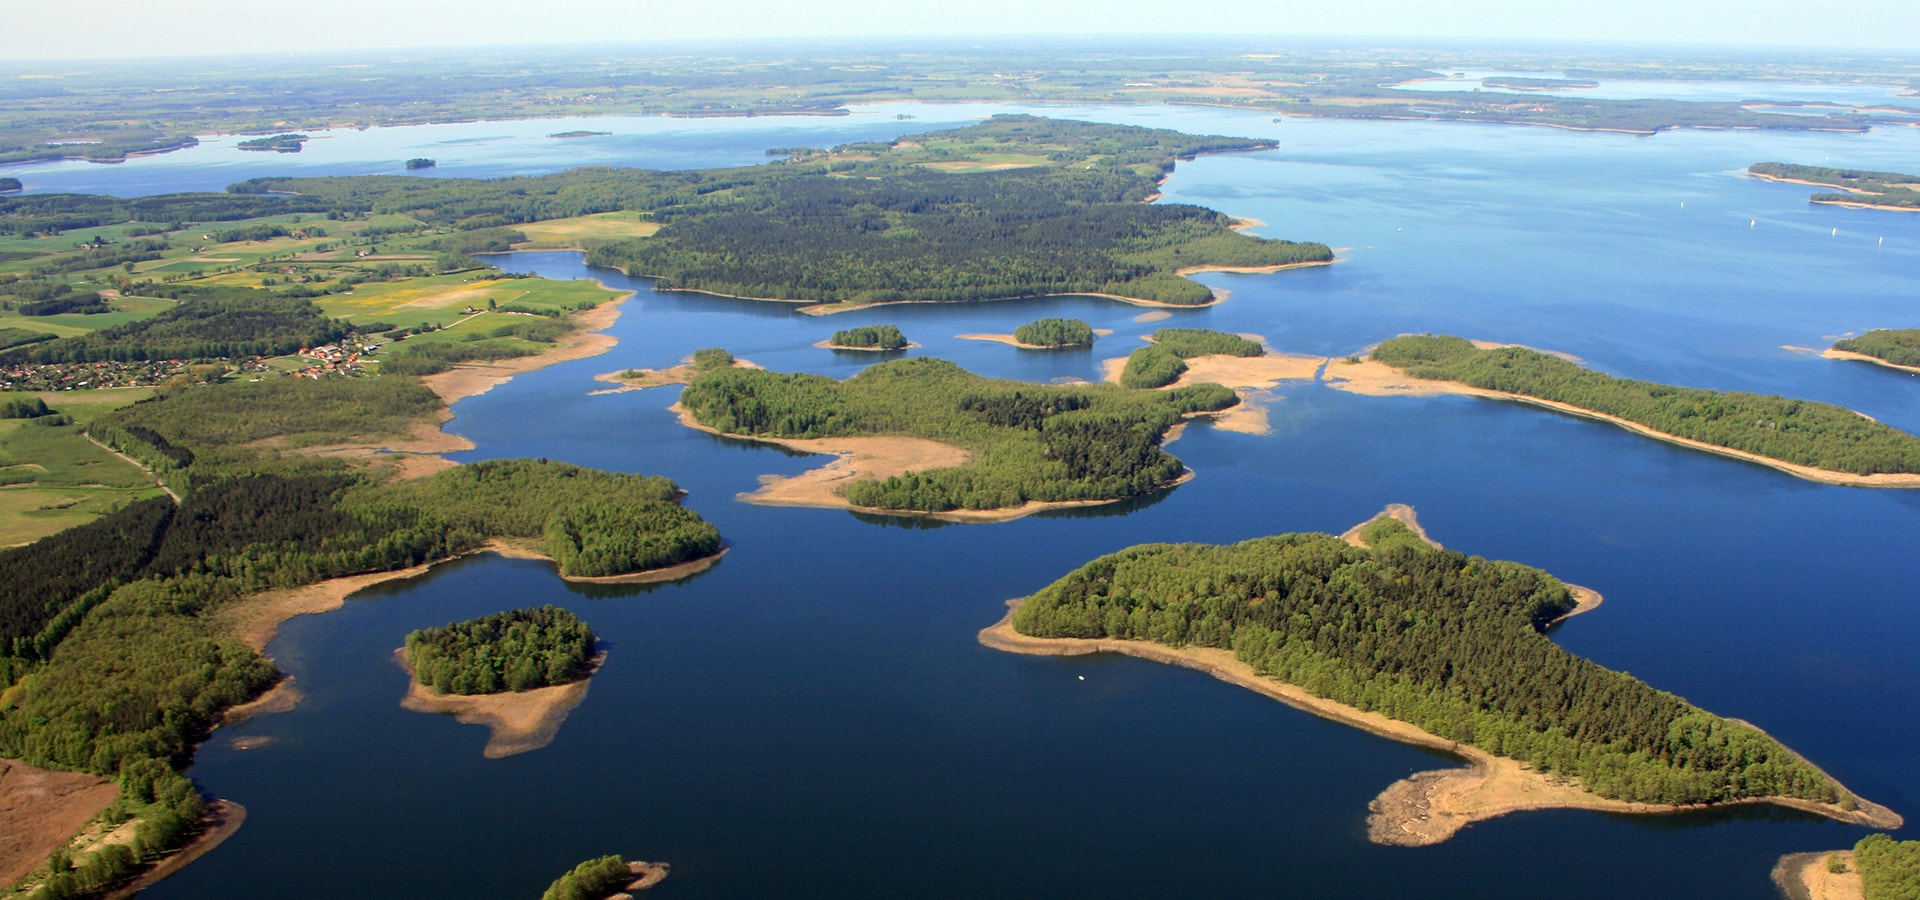 the-land-of-lakes-comprising-over-2000-in-poland-secret-world